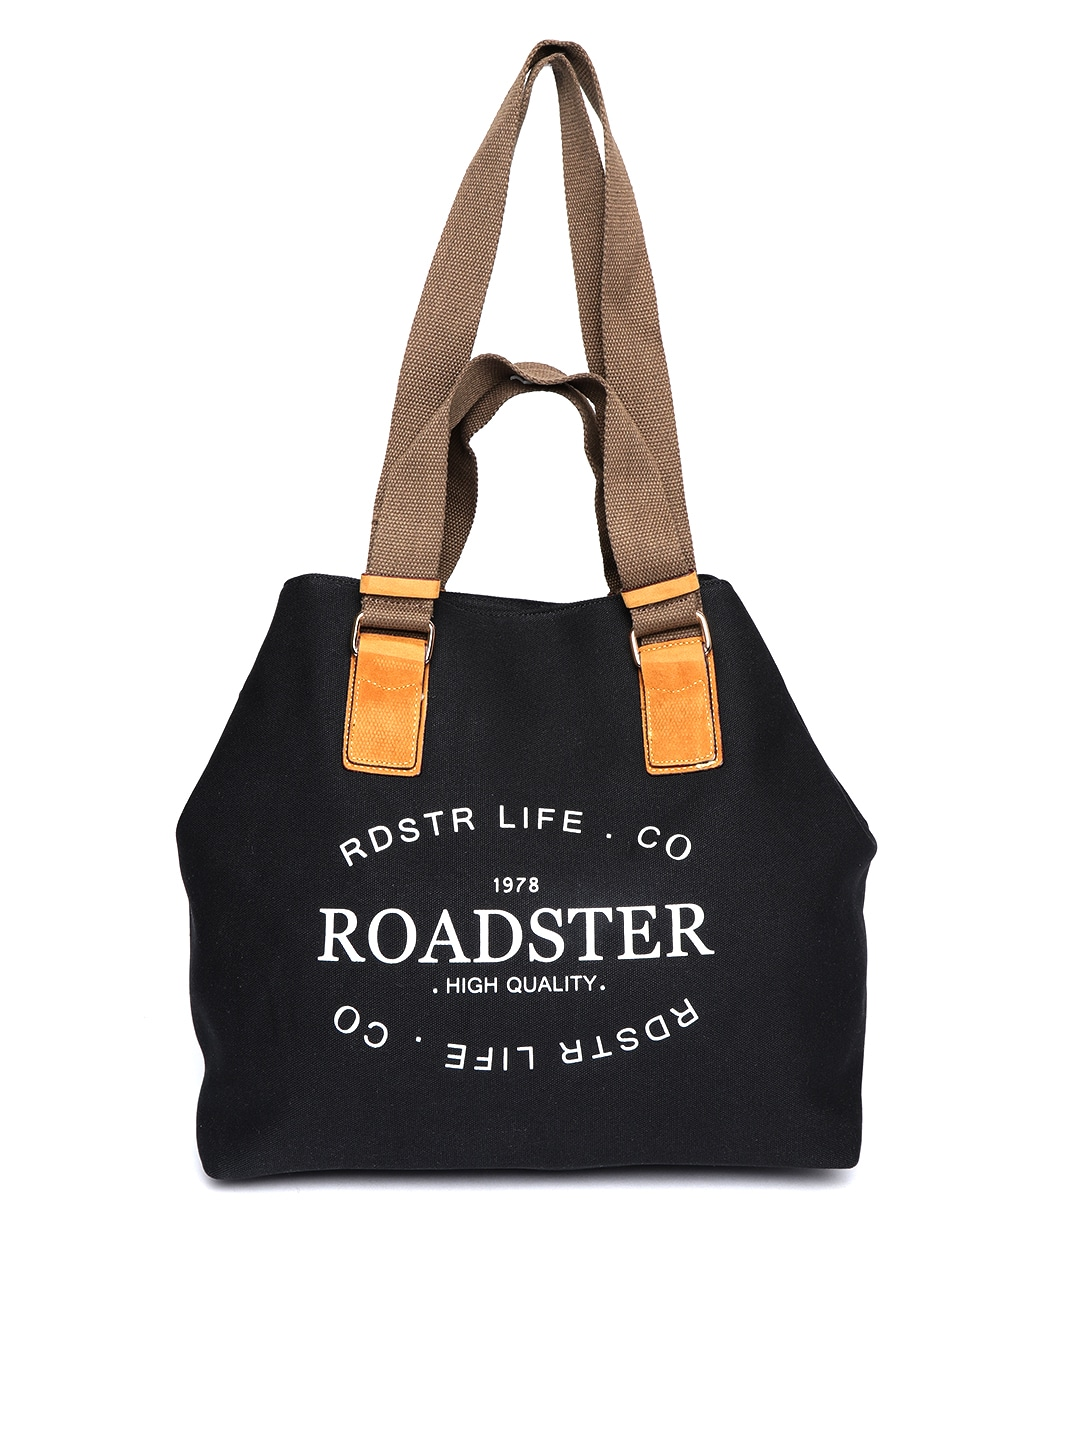 Tote Bag - Buy Latest Tote Bags For Women   Girls Online  d4e5fe62ea446